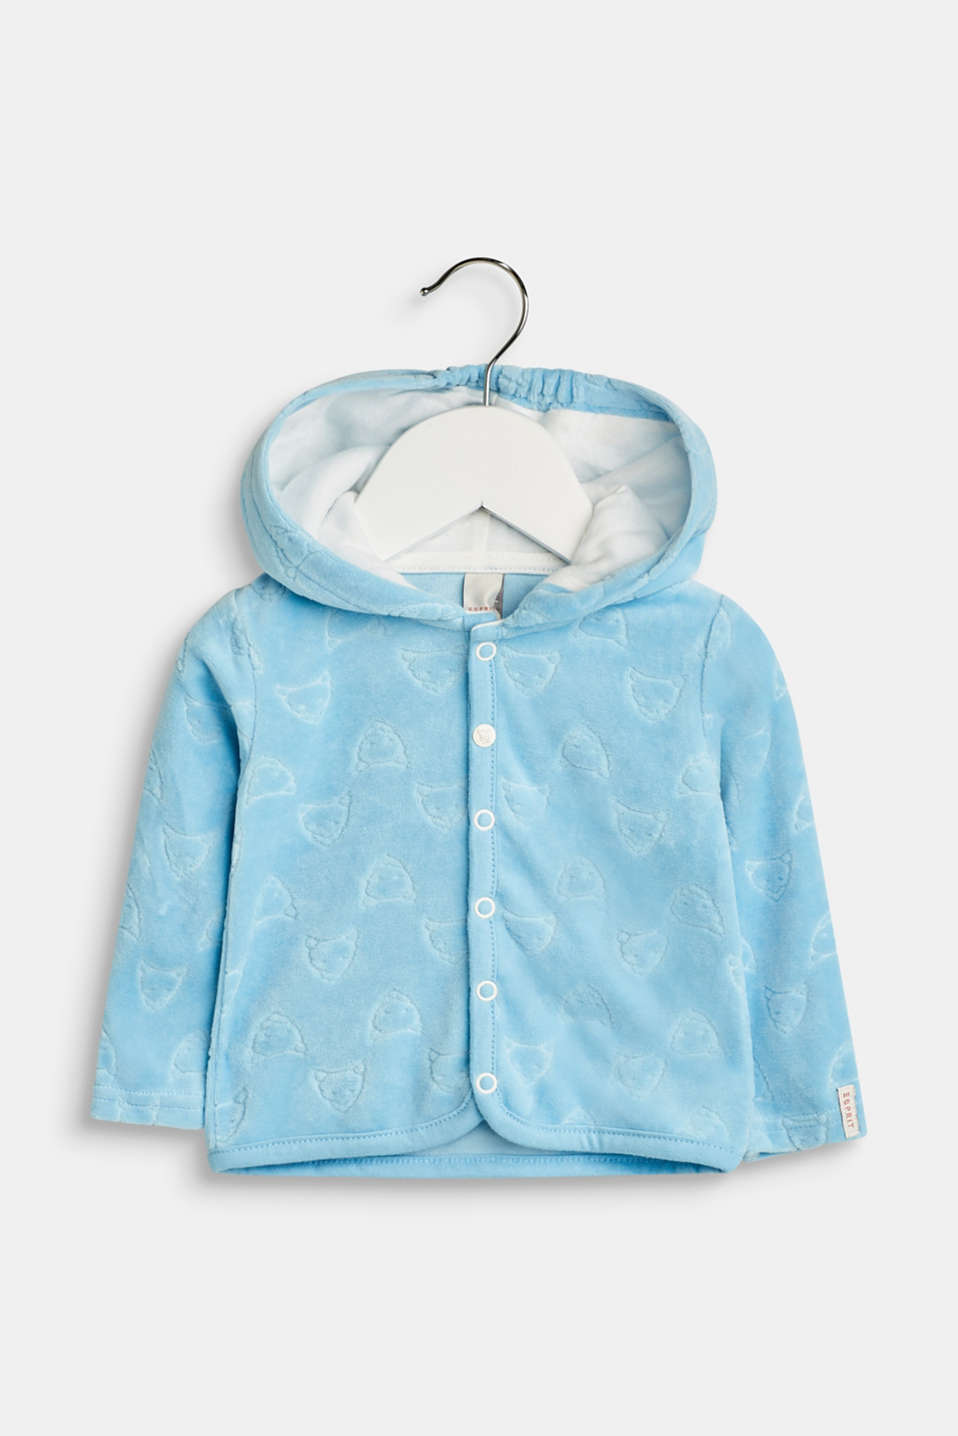 Esprit - Velour hooded cardigan containing organic cotton